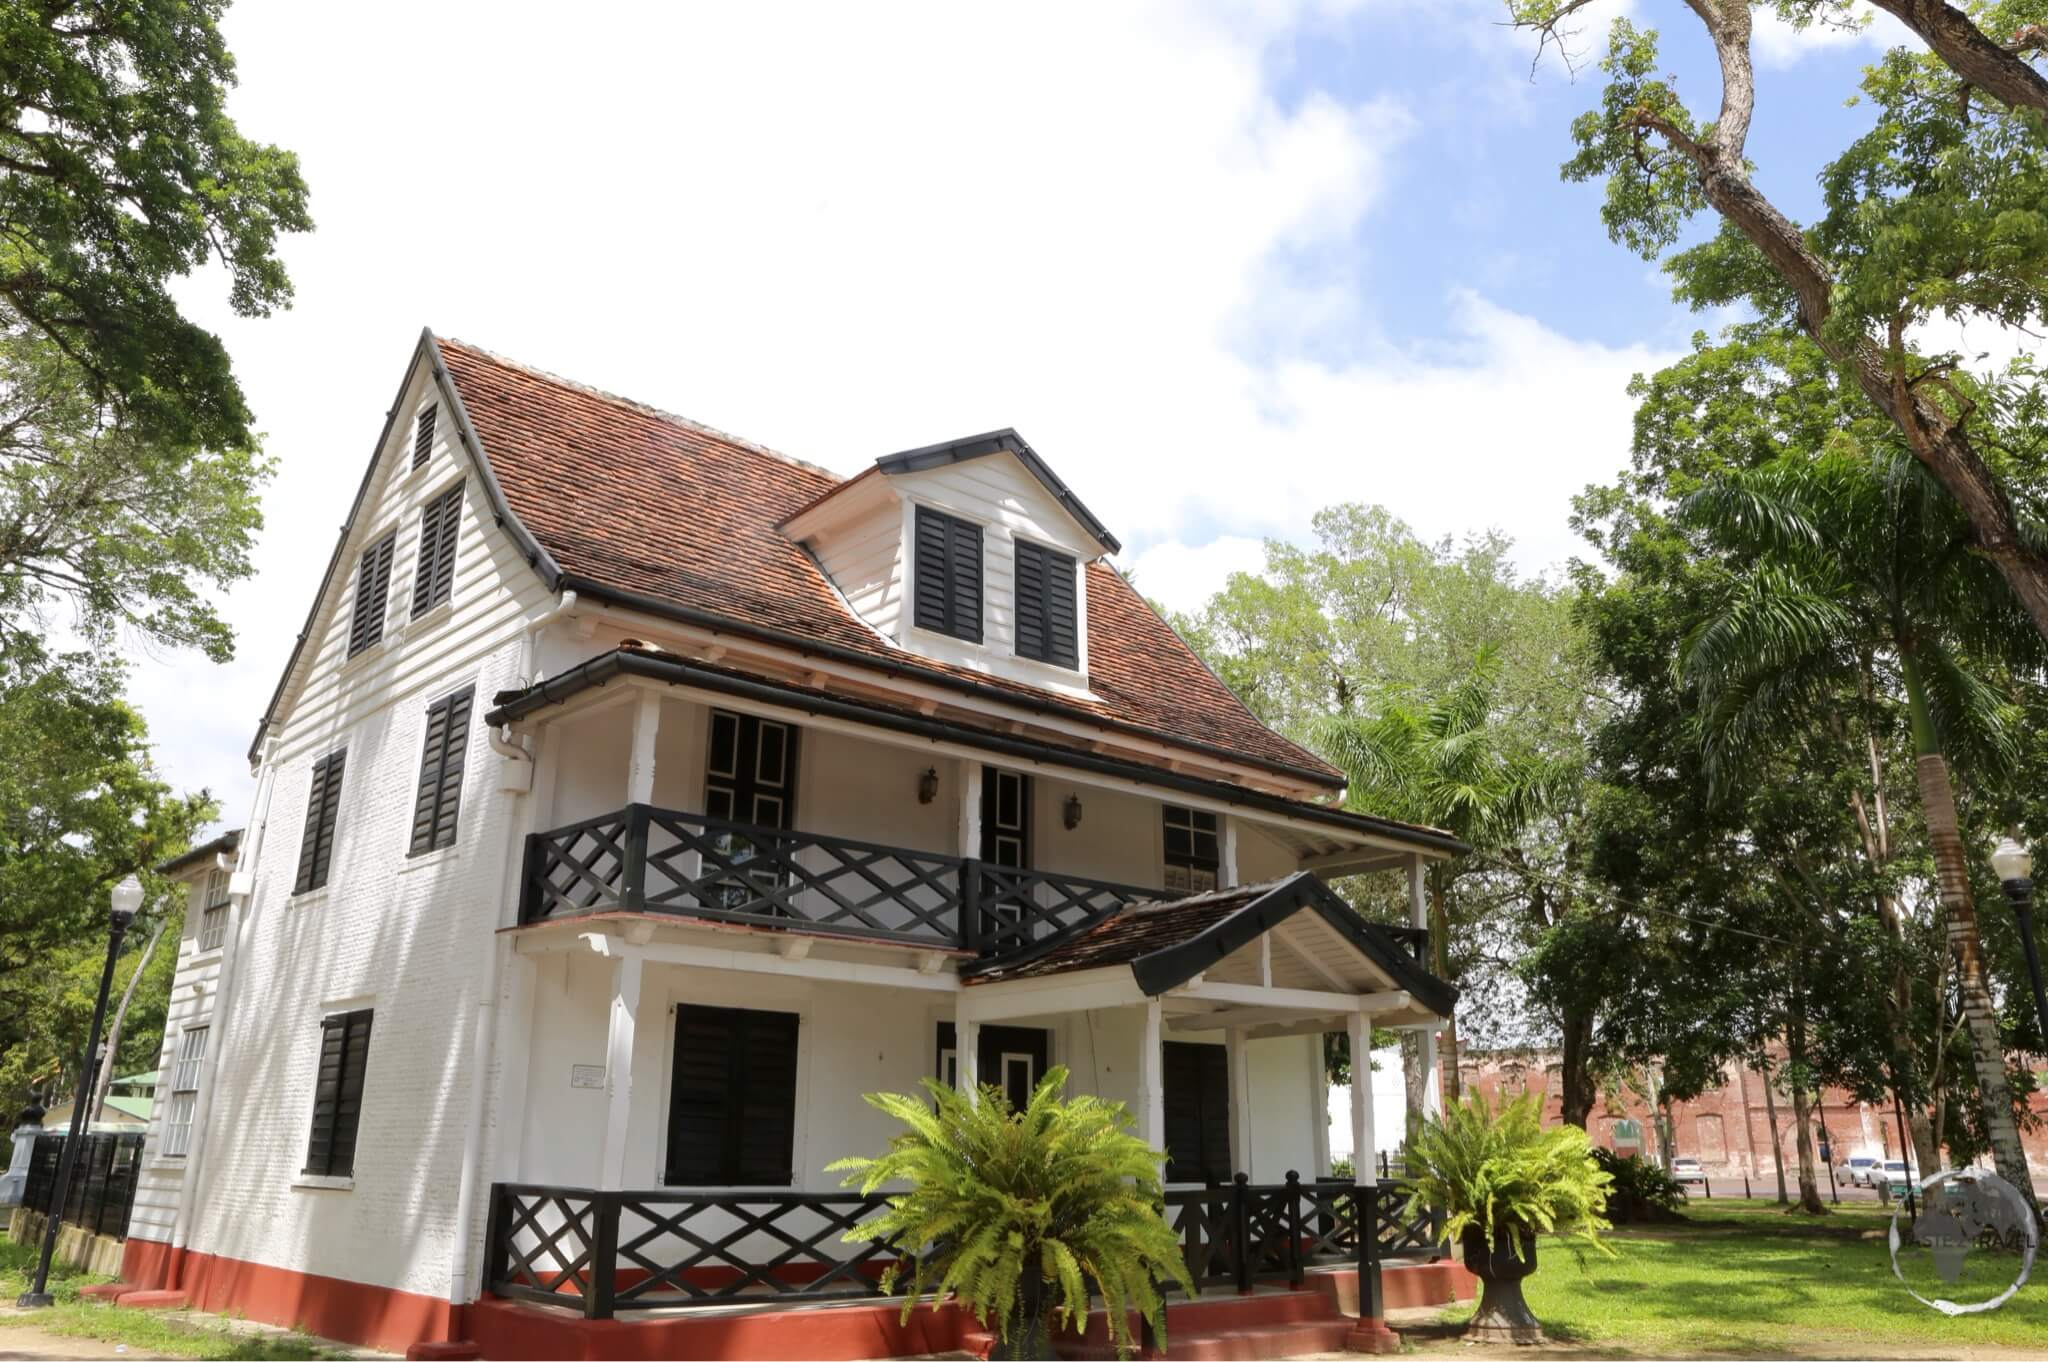 Historic Dutch Colonial architecture can be seen throughout Paramaribo.